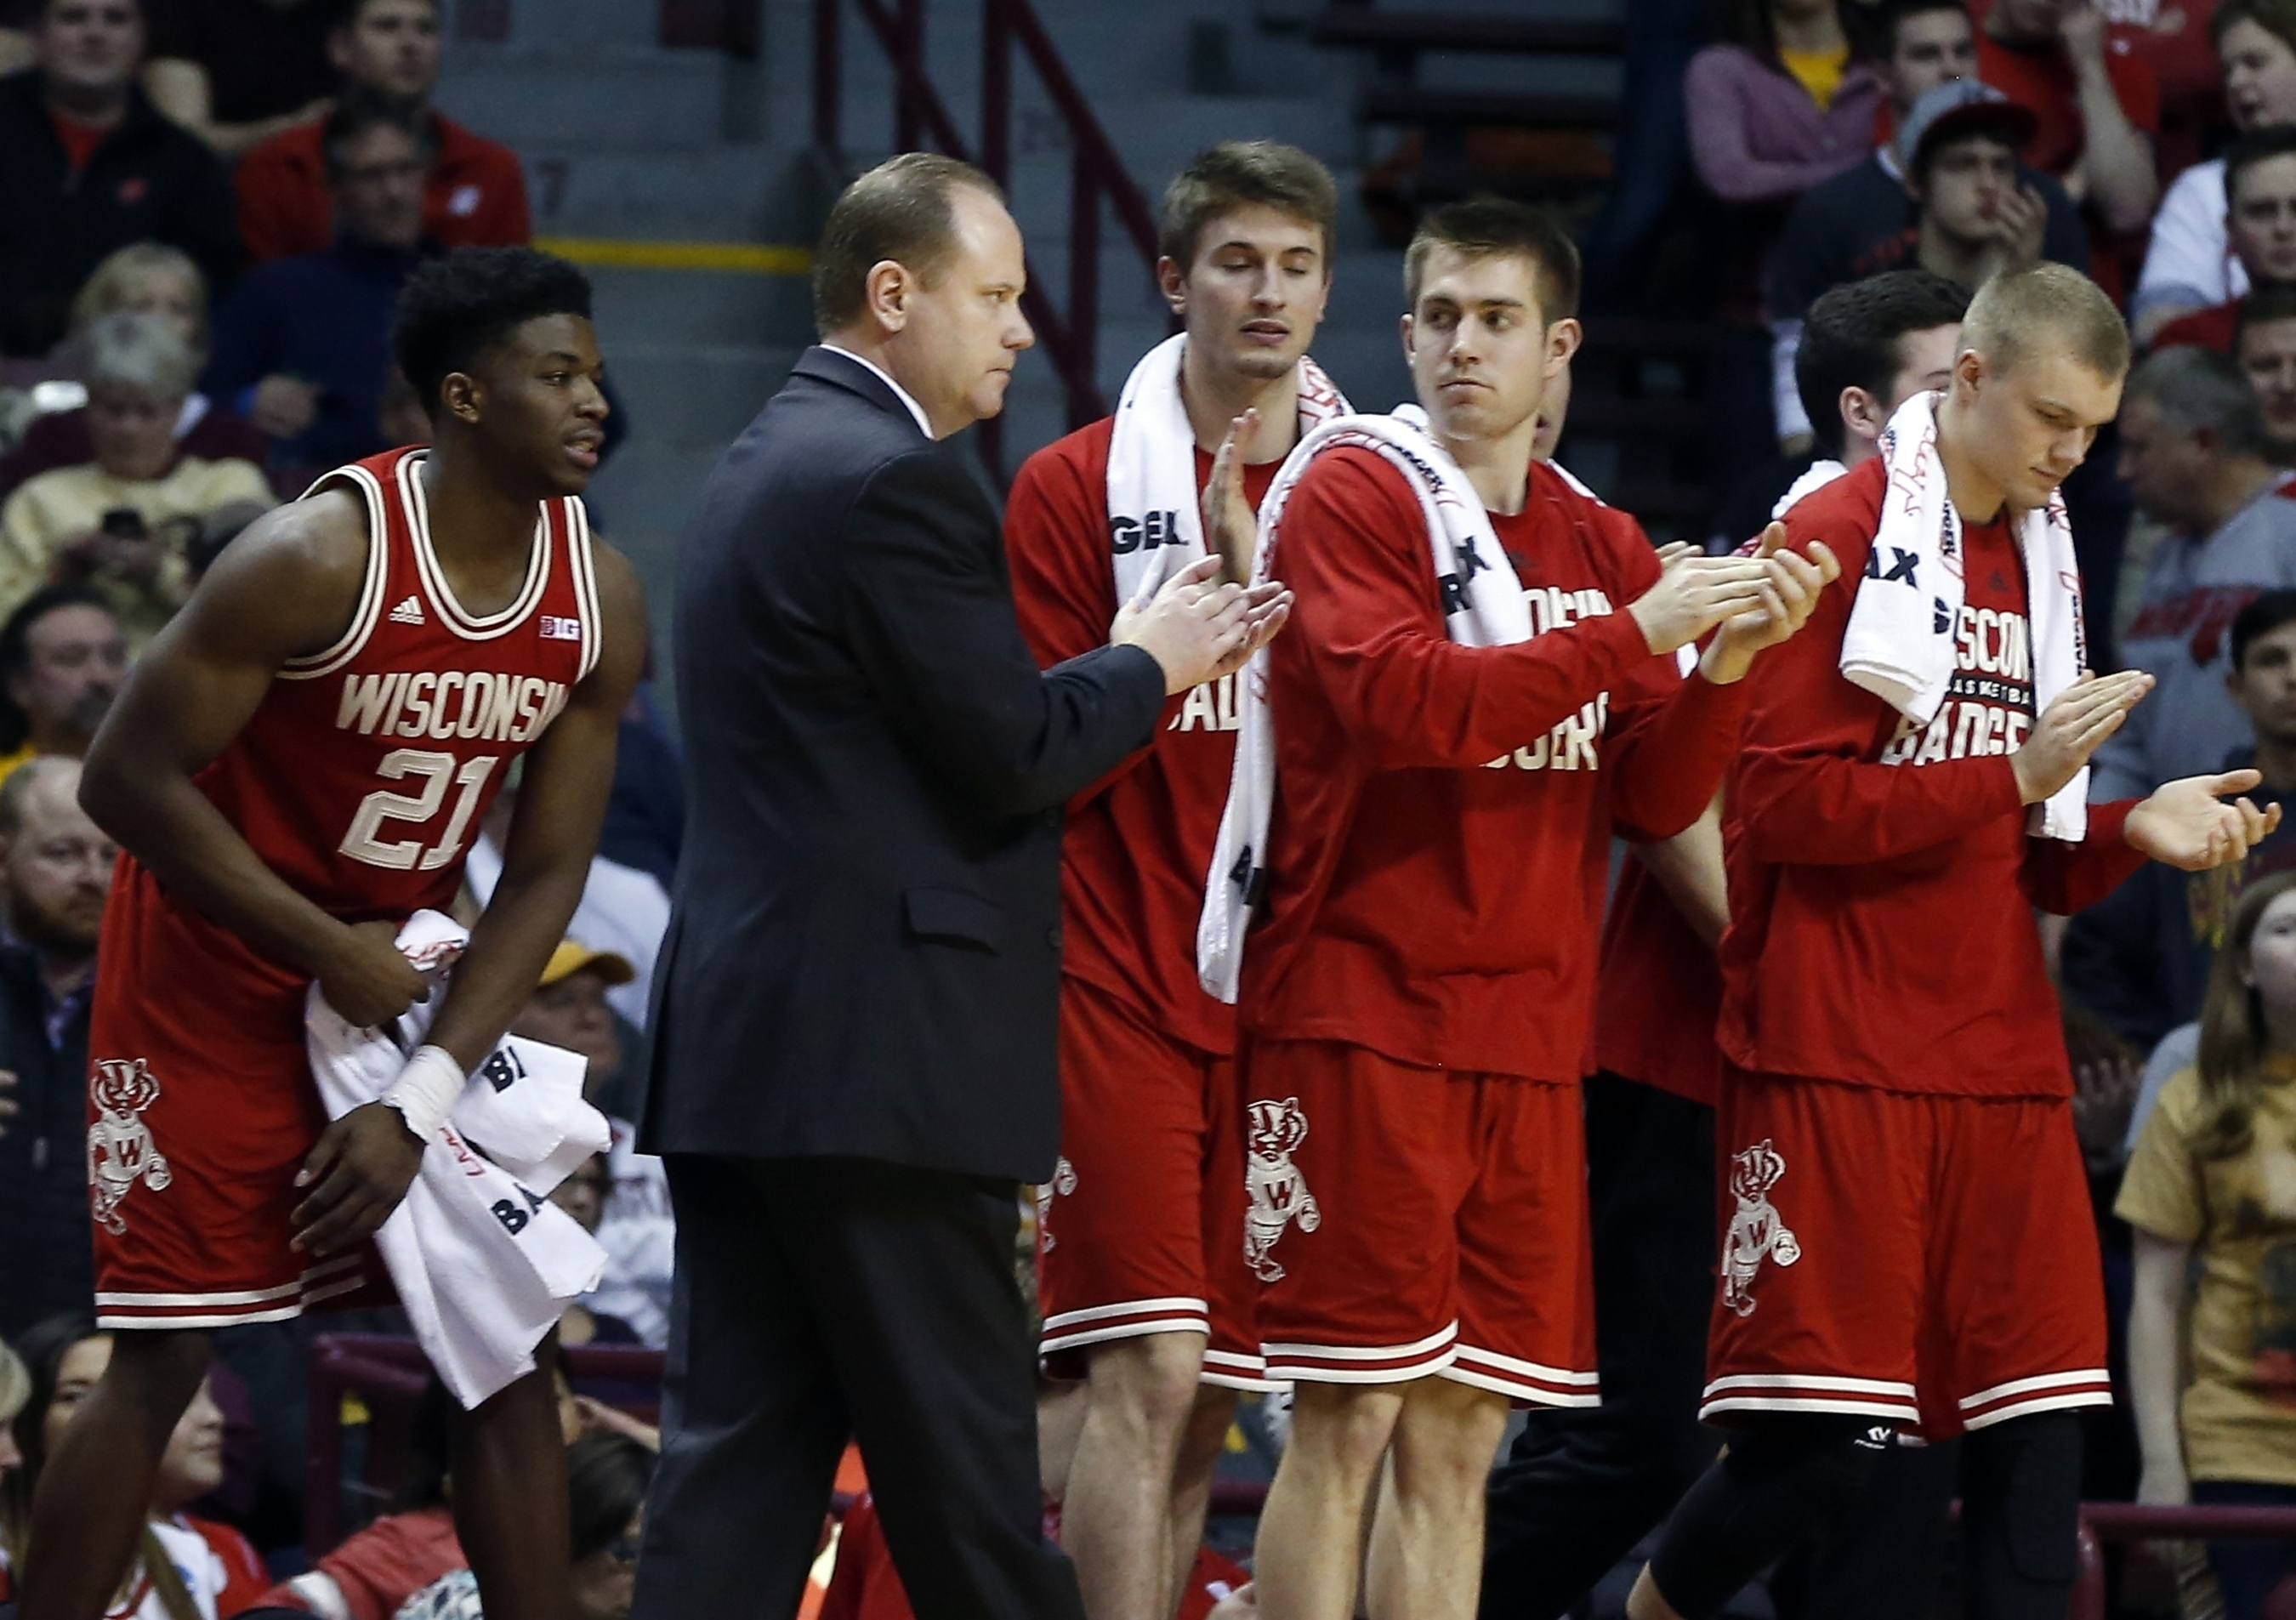 Wisconsin interi coach Greg Gard and his players applaud a play duirng the second half of an NCAA college basketball game against Minnesota, Wednesday, March 2, 2016, in Minneapolis. Wisconsin won 62-49. (AP Photo/Jim Mone)